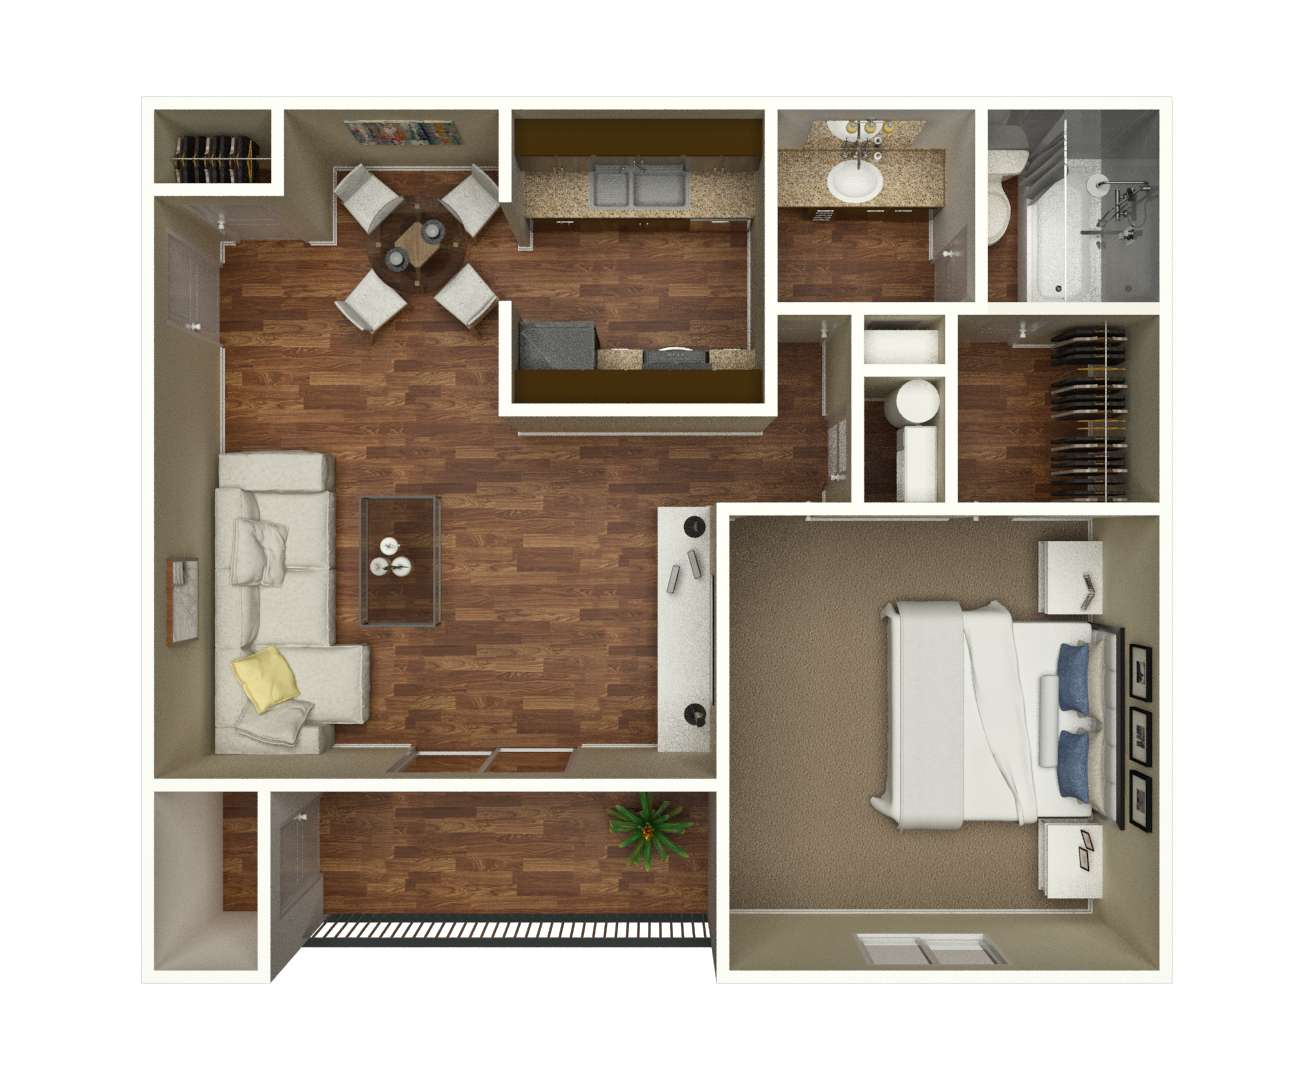 Single bedroom top view - One Bedroom One Bathroom 730 Square Feet Starting At 805